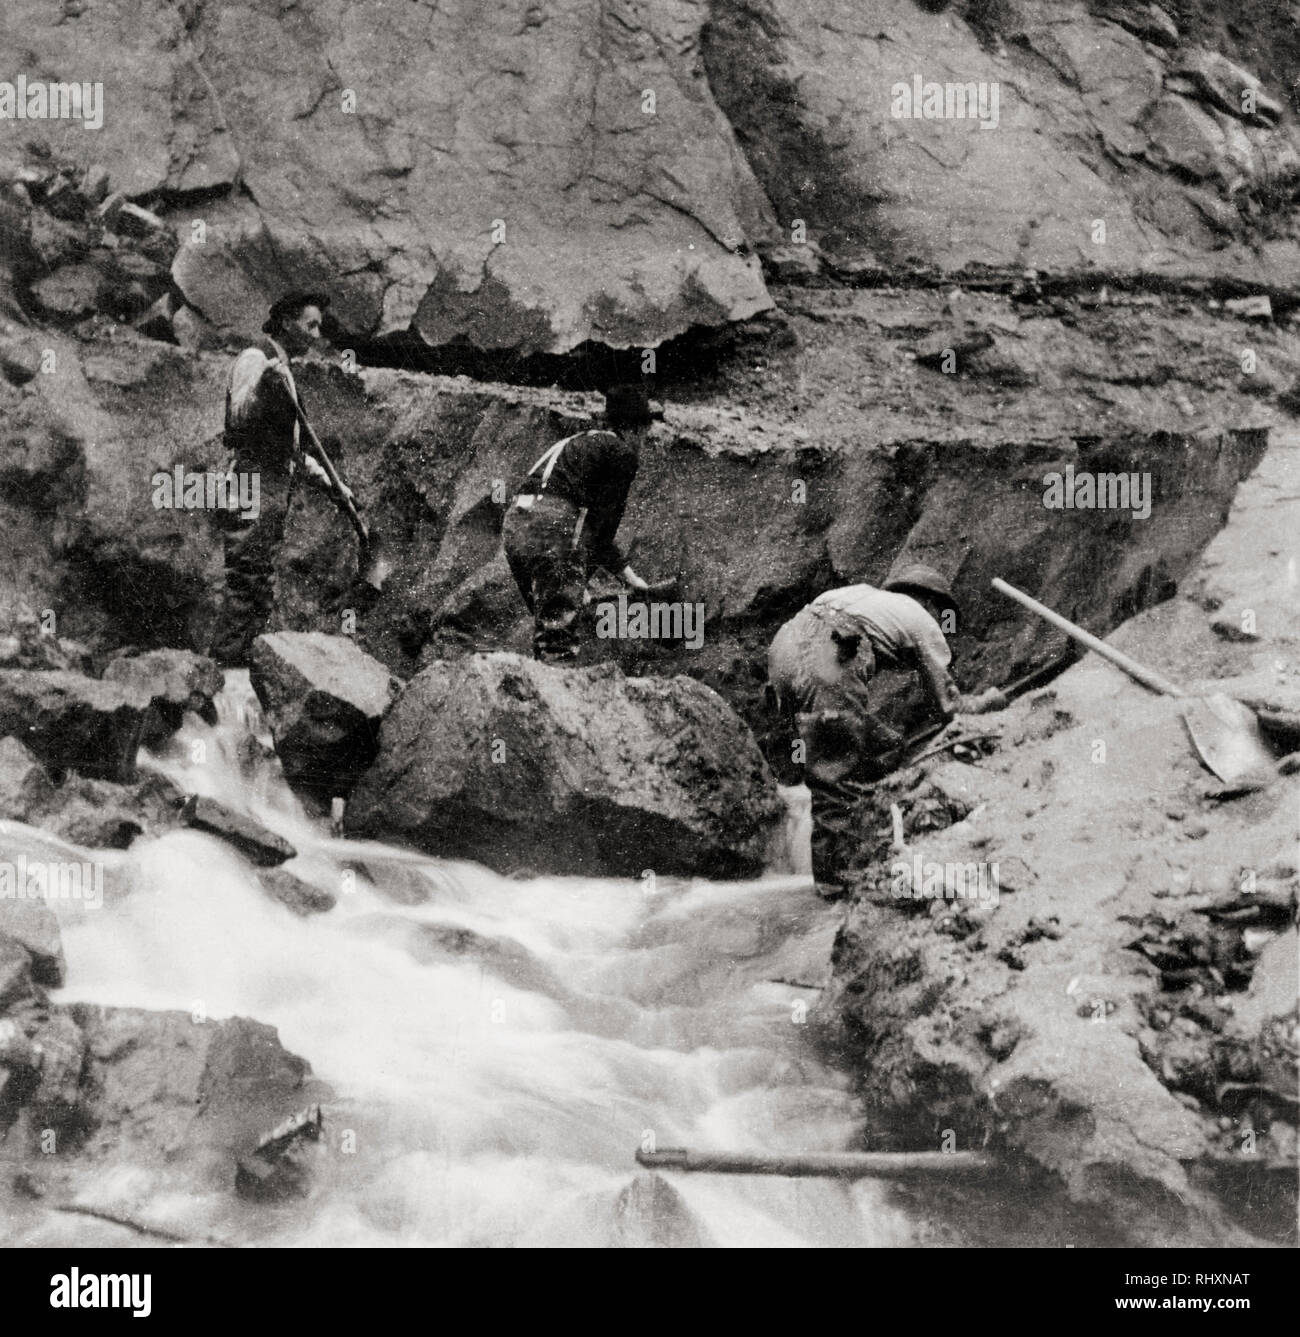 Gold Miners at Work, Alaska in 1898, showing hydraulic mining in summer possibly at the base of a glacier - Stock Image